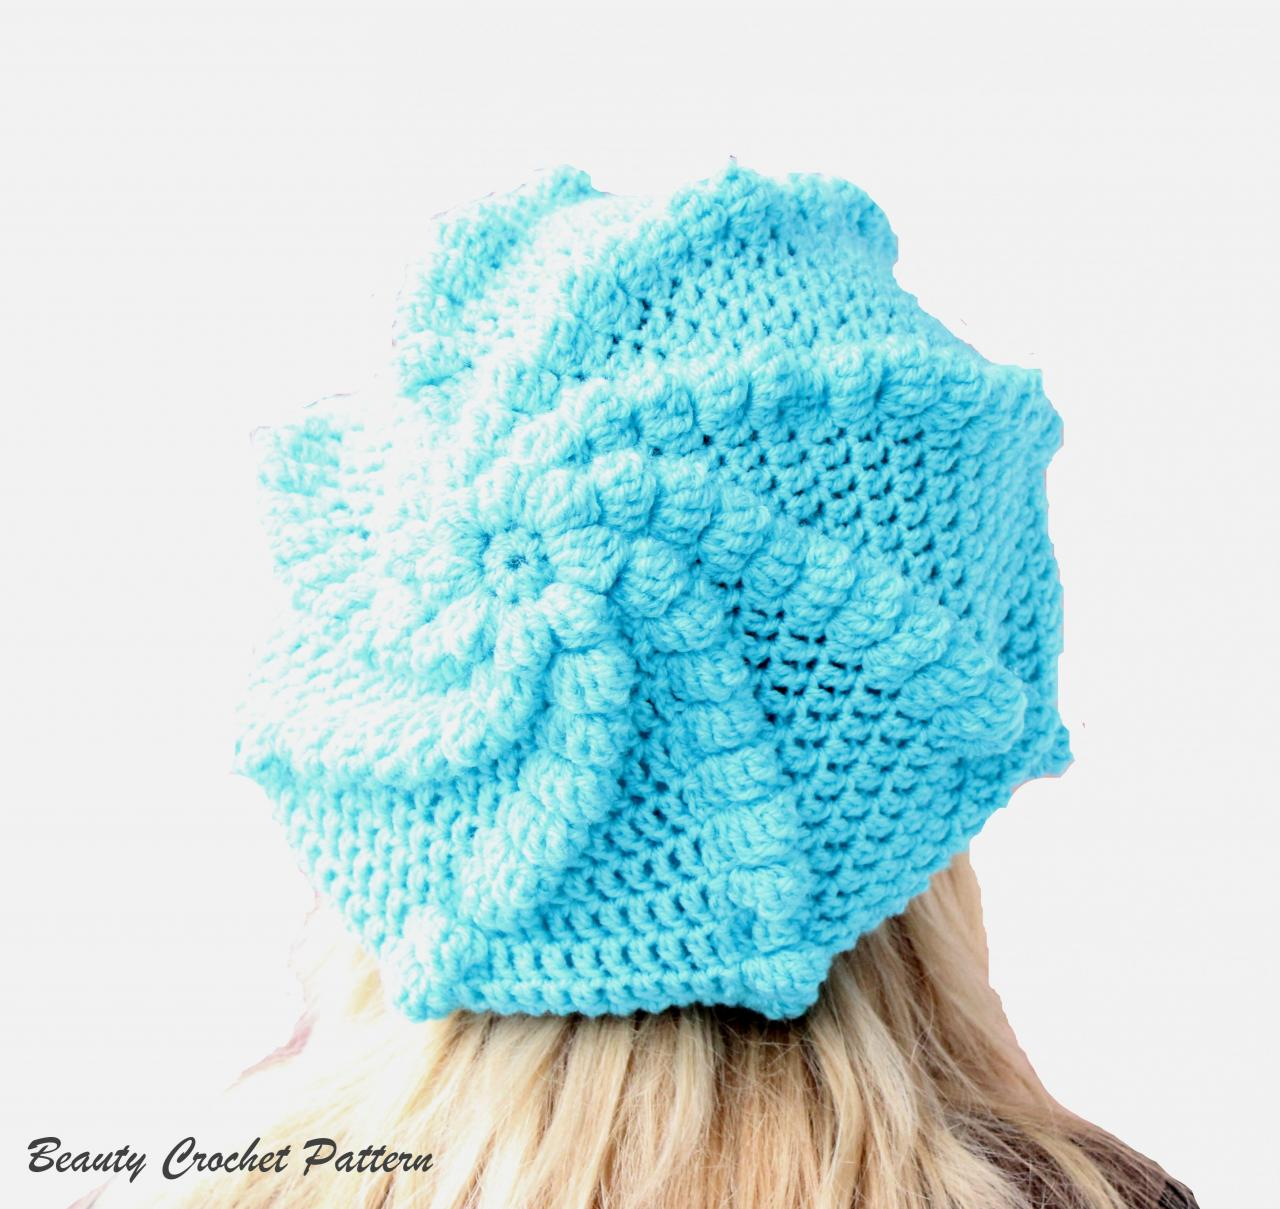 Crochet Slouchy Hat Pattern, Crochet Oversized French ...